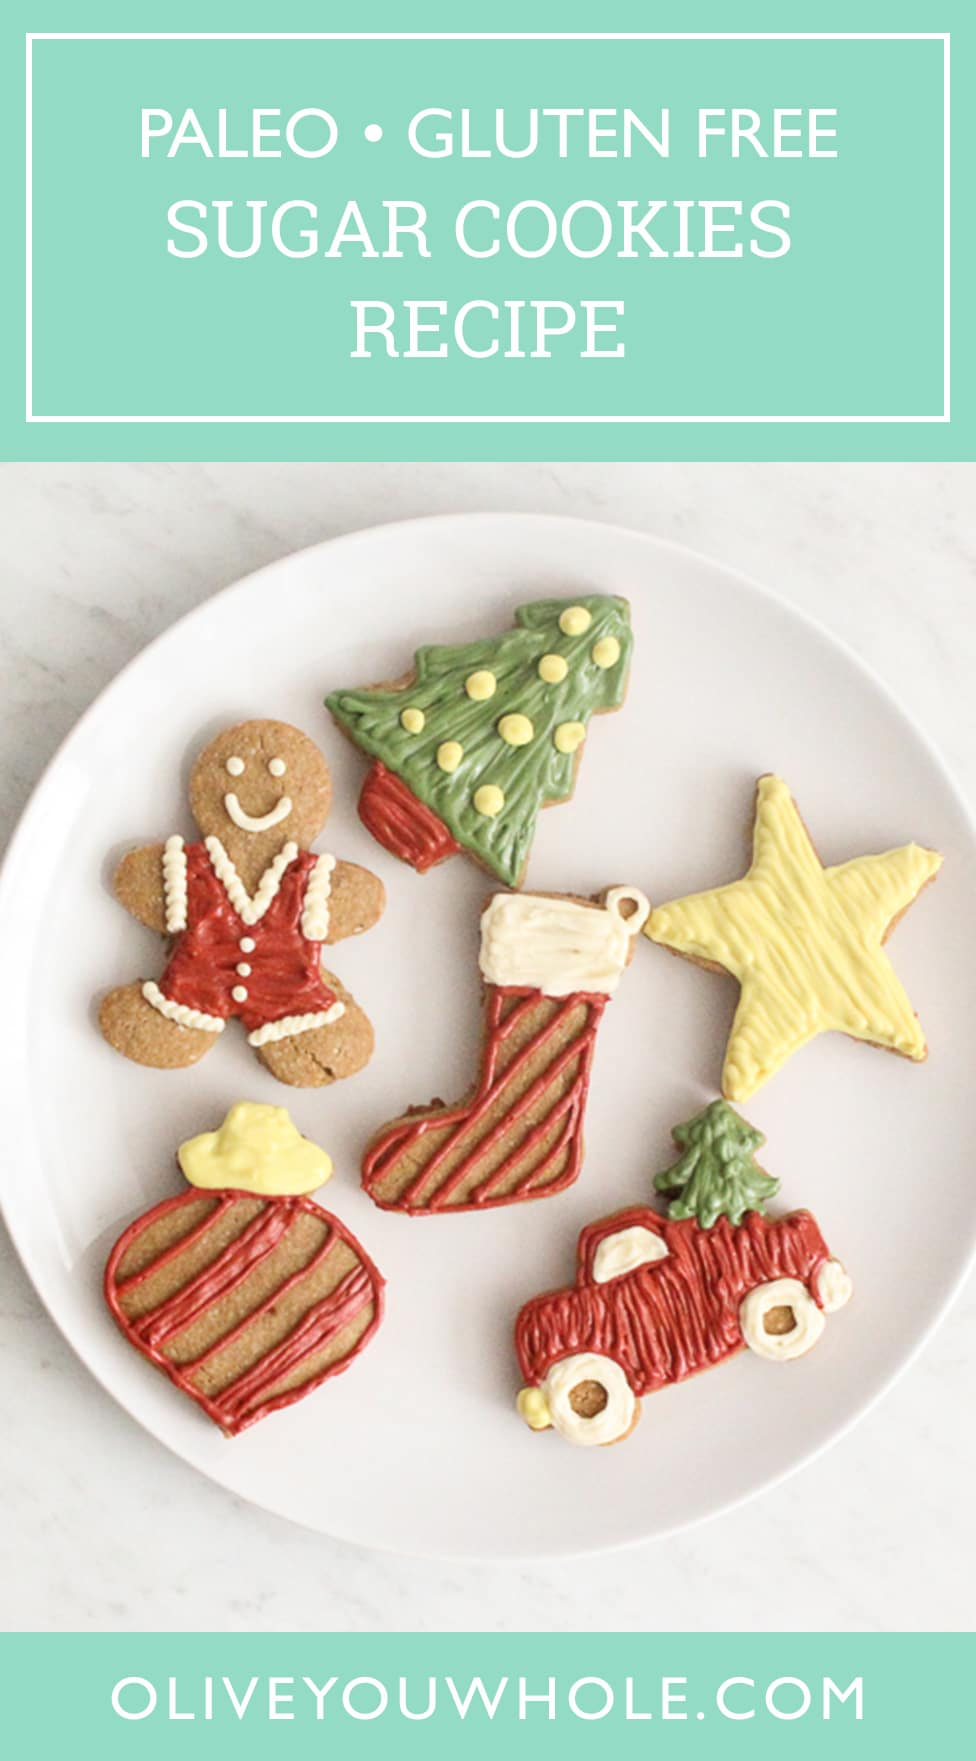 Paleo Sugar Cookies Recipe Pinterest